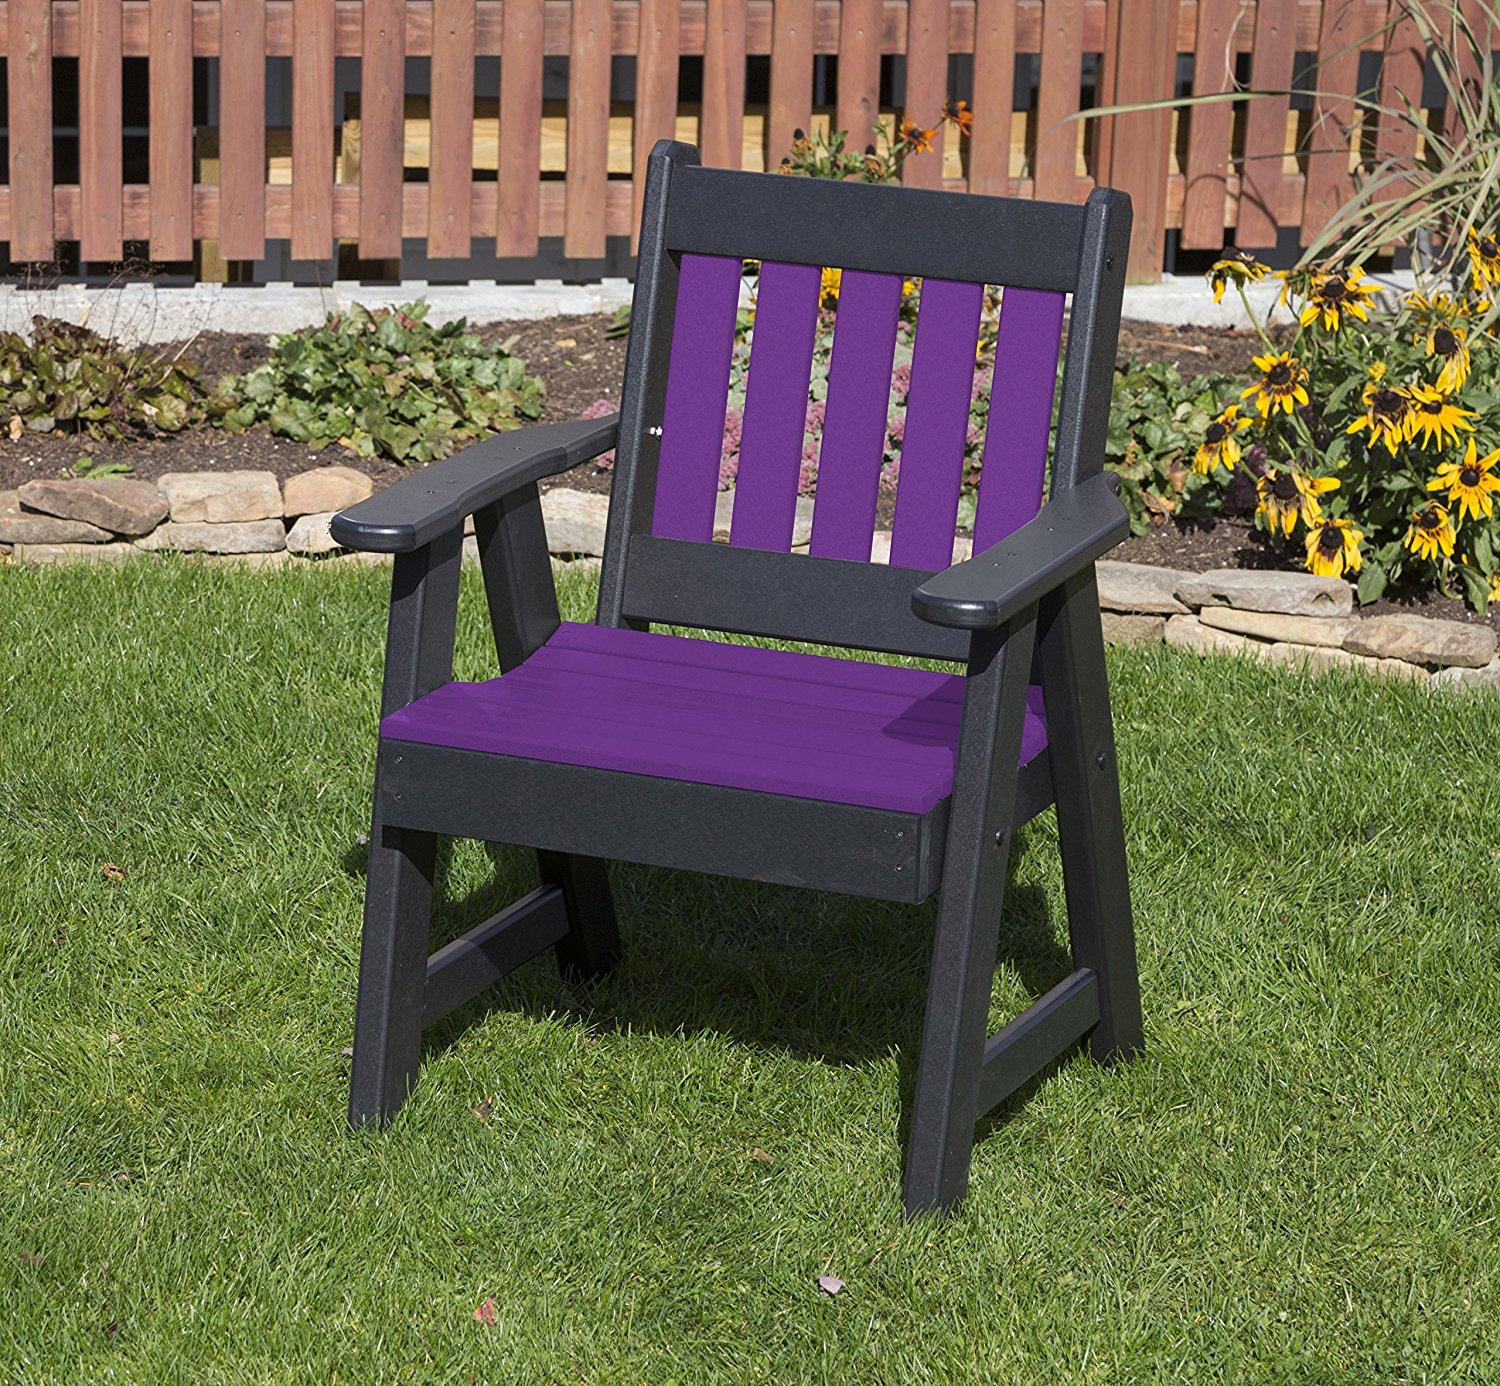 Outdoor Patio Garden Lawn Exterior Bright Purple Finish 2 Ft Poly Lumber Mission Heavy Duty Everlasting Amish Crafted Chair